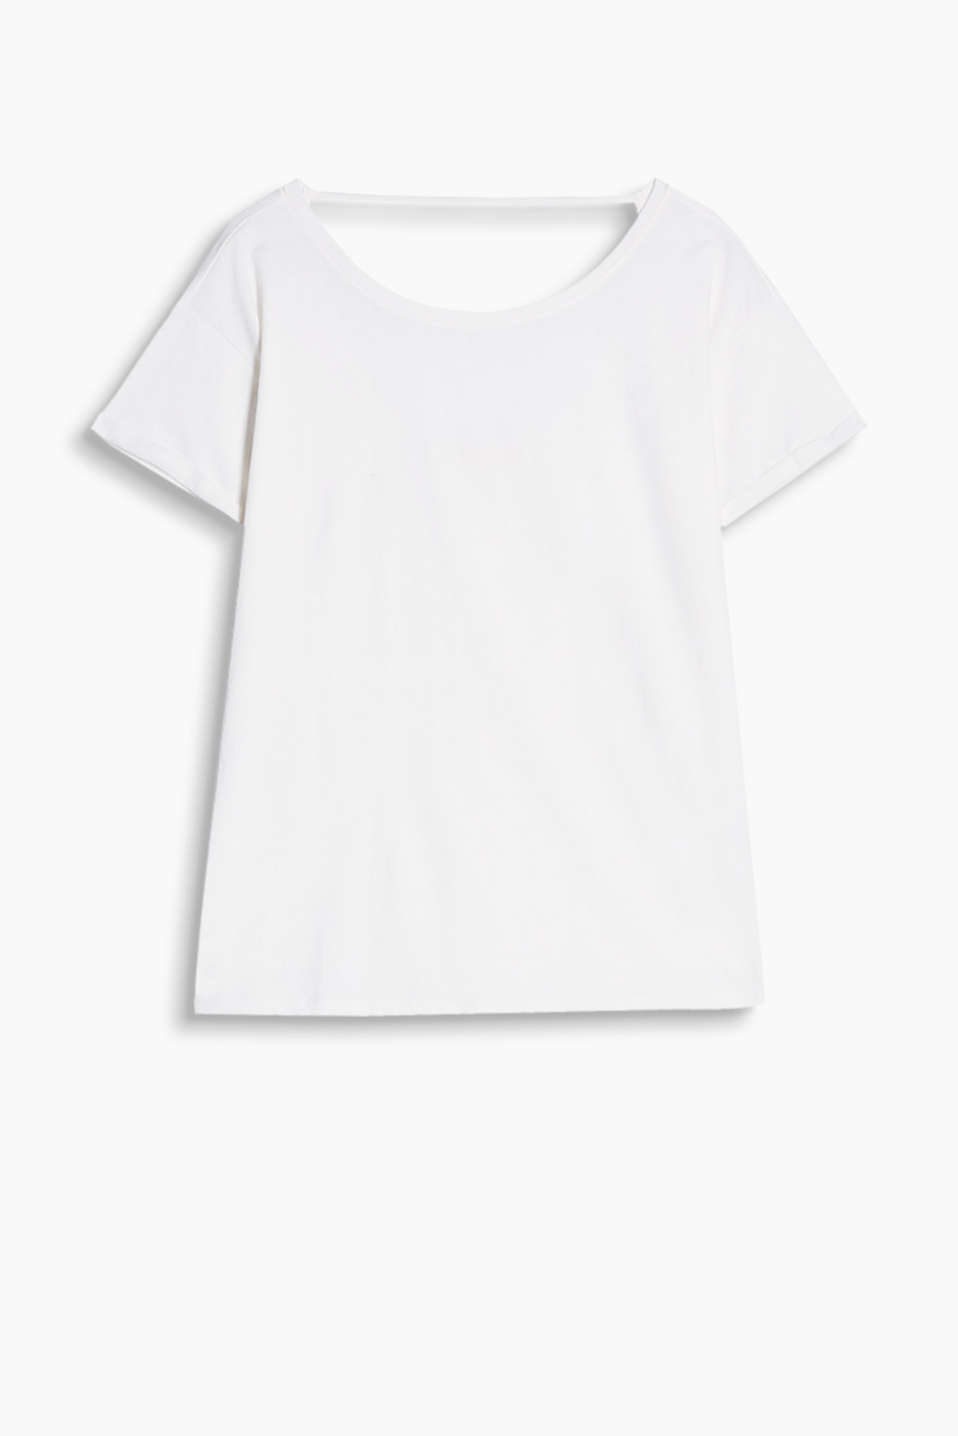 Loose T-shirt with a scoop back neckline and casual, trendy dye